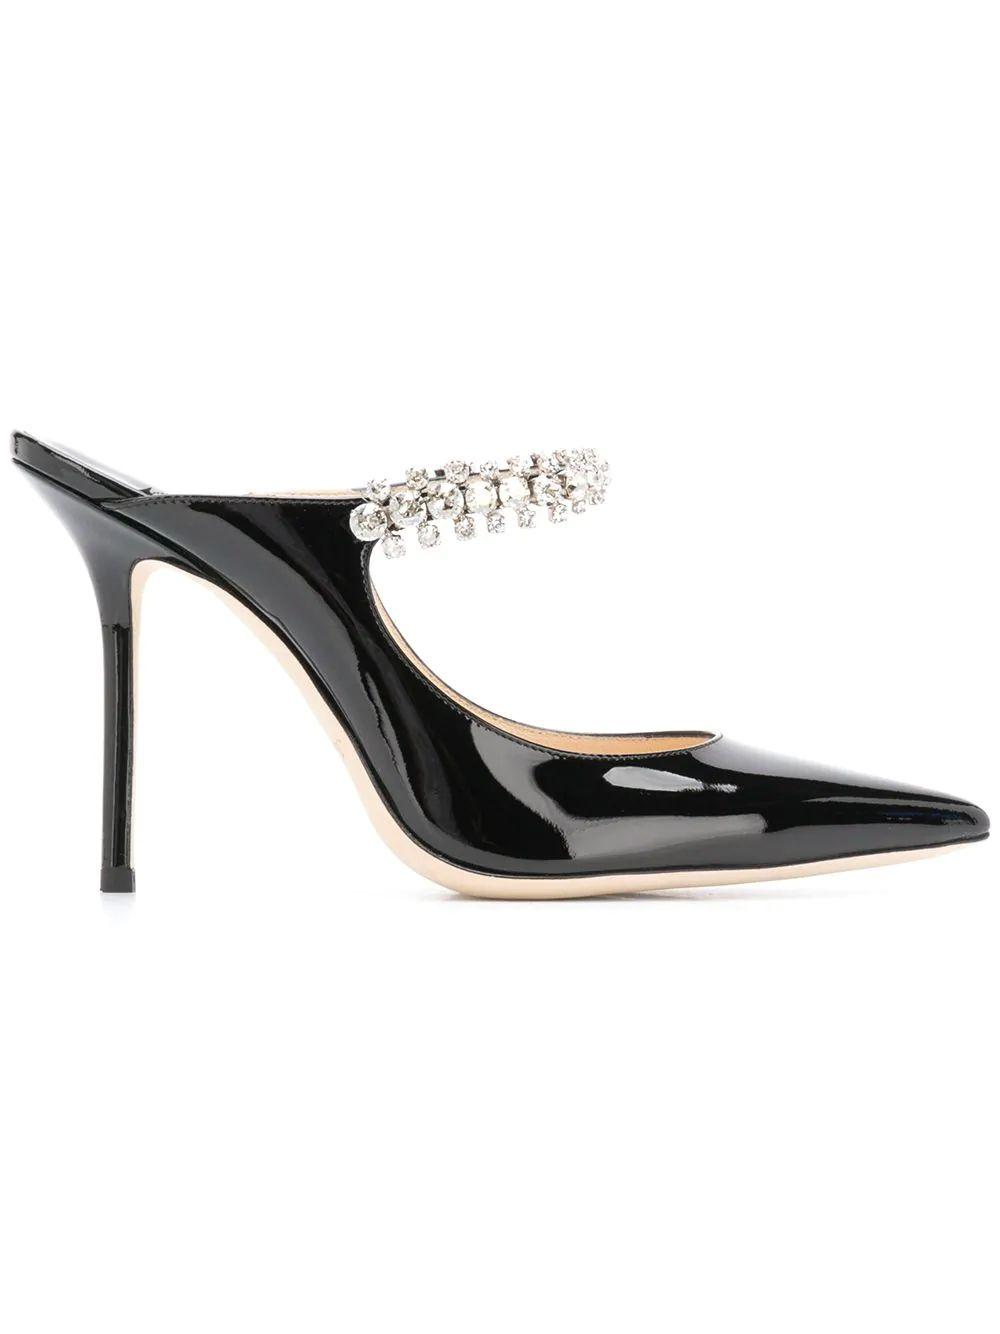 Patent 100mm Mule With Crystal Strap